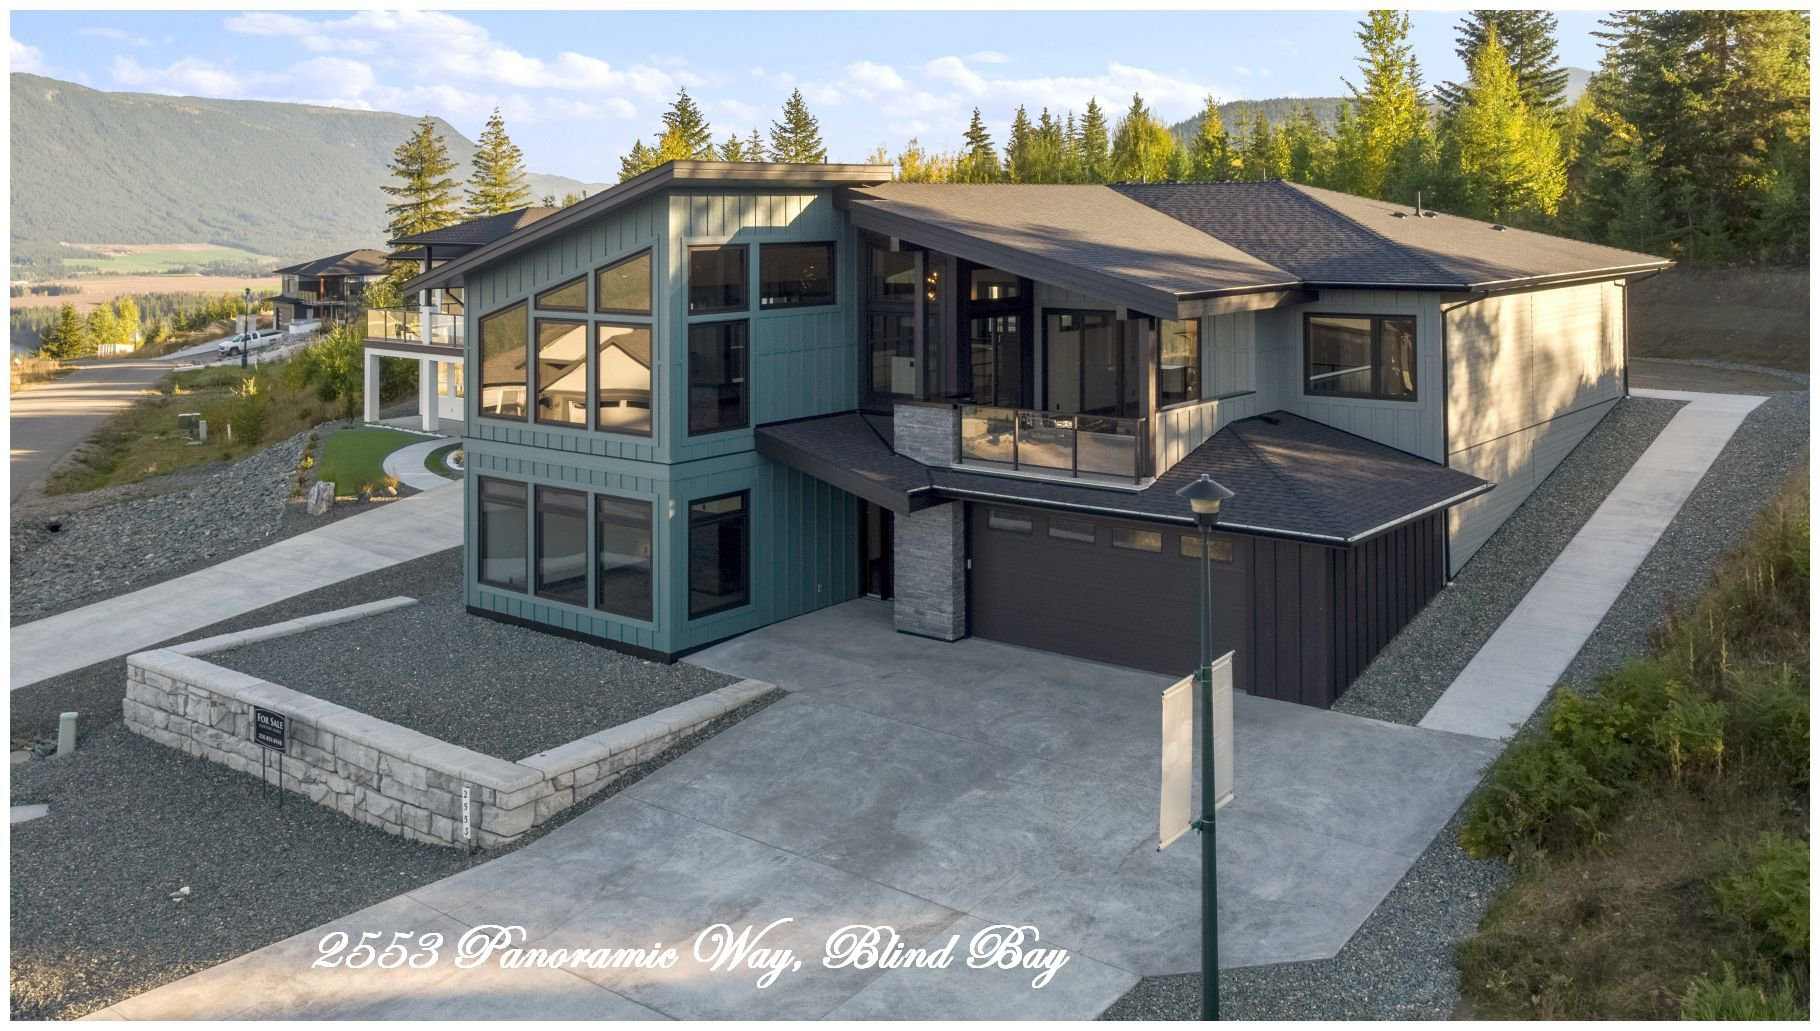 Main Photo: 2553 Panoramic Way in Blind Bay: Highlands House for sale : MLS®# 10217587